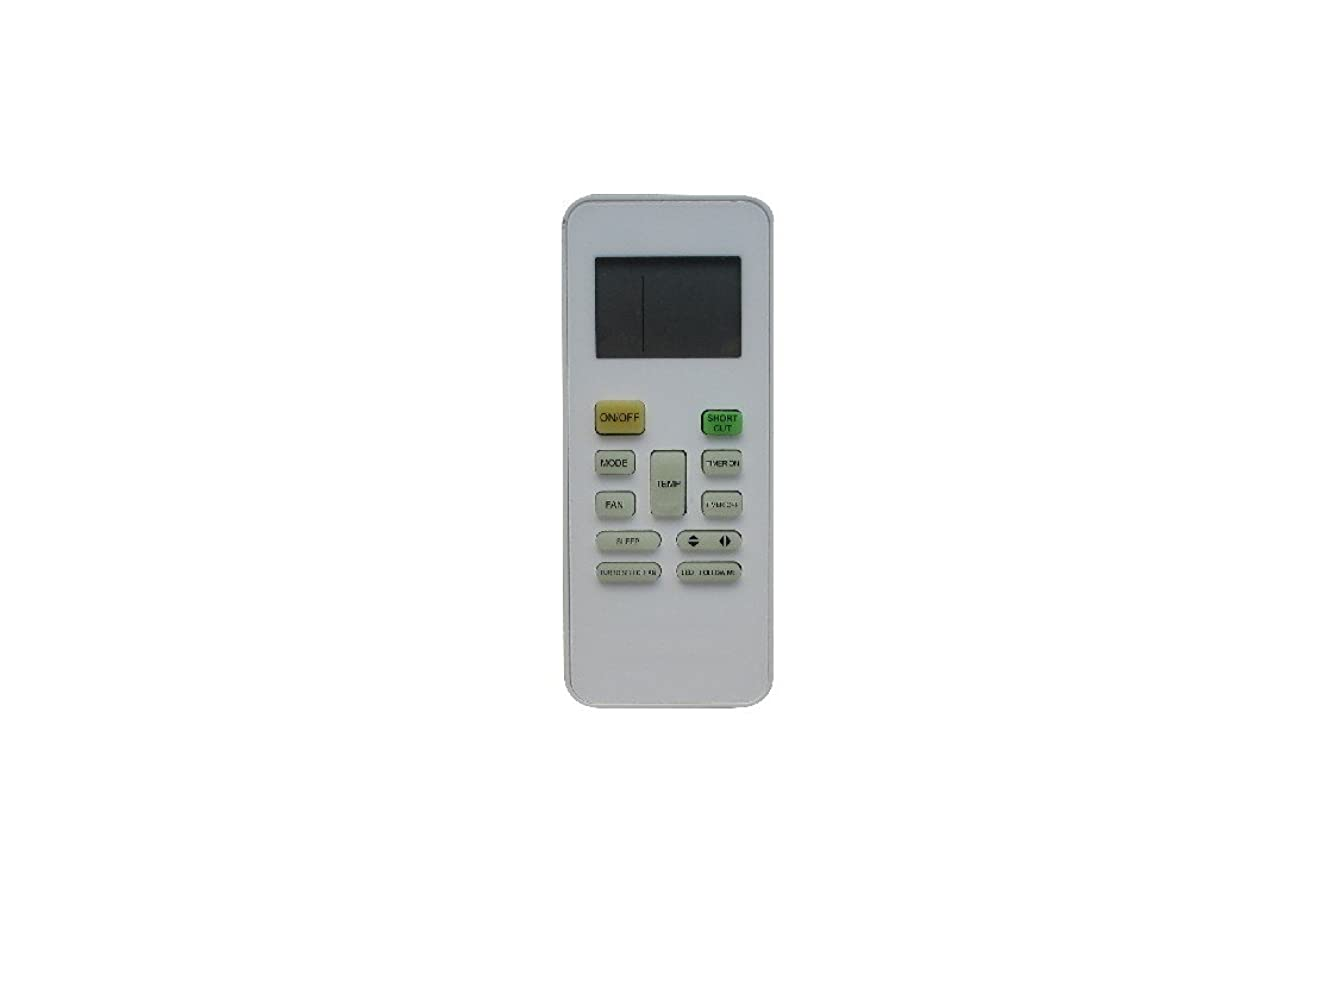 Hotsmtbang Replacement Remote Control For heat controller Comfort-aire B-SMA18SC B-VMH09SC-1 B-VMH12SC-1 B-VMH18SC-1 B-VMH24SC-1 AC Air Conditioner